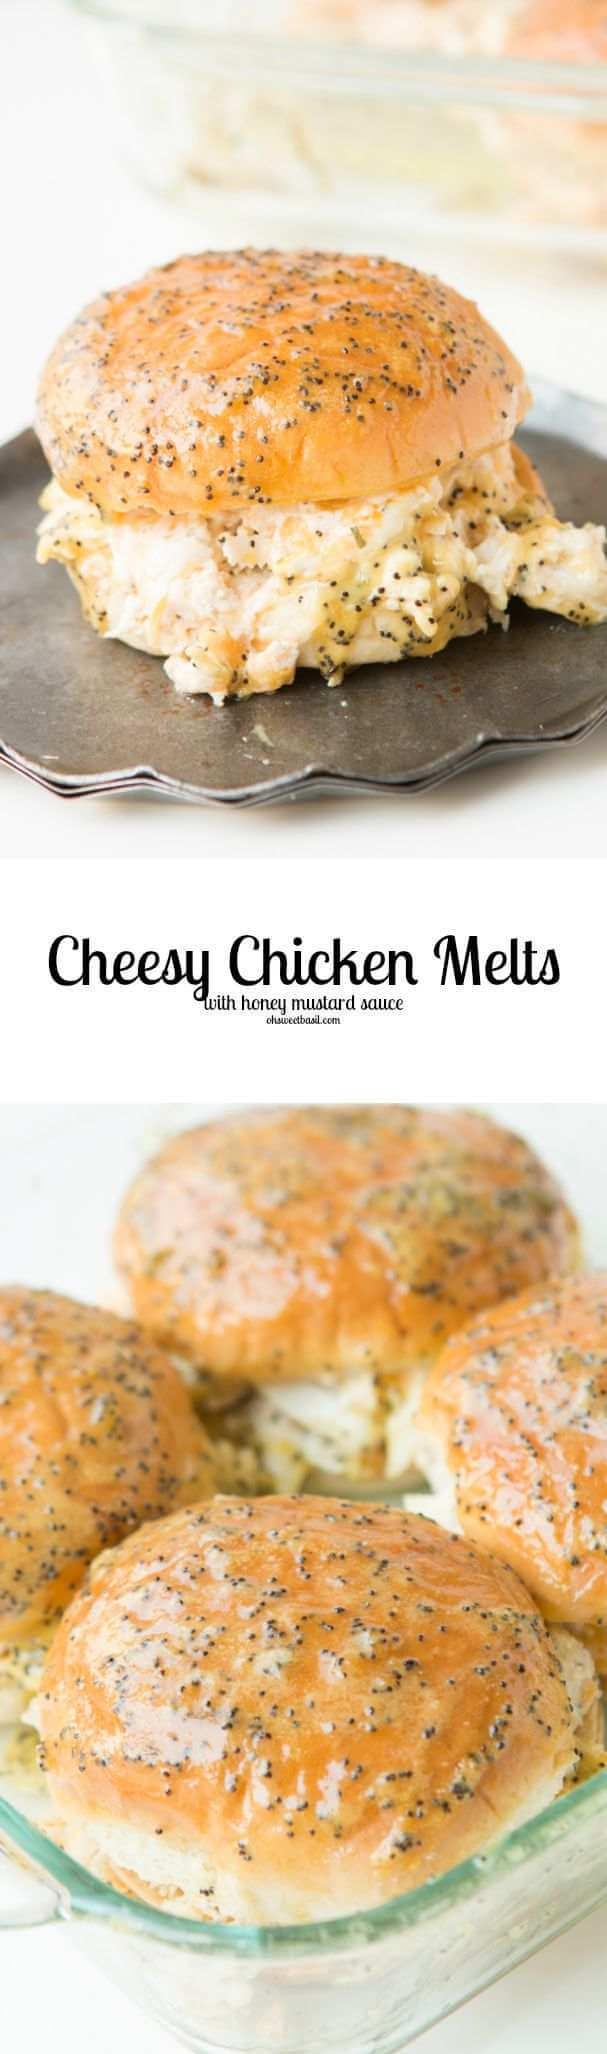 Cheesy chicken melts are the newest craze! You have to try them asap! That honey mustard sauce...yum! ohsweetbasil.com